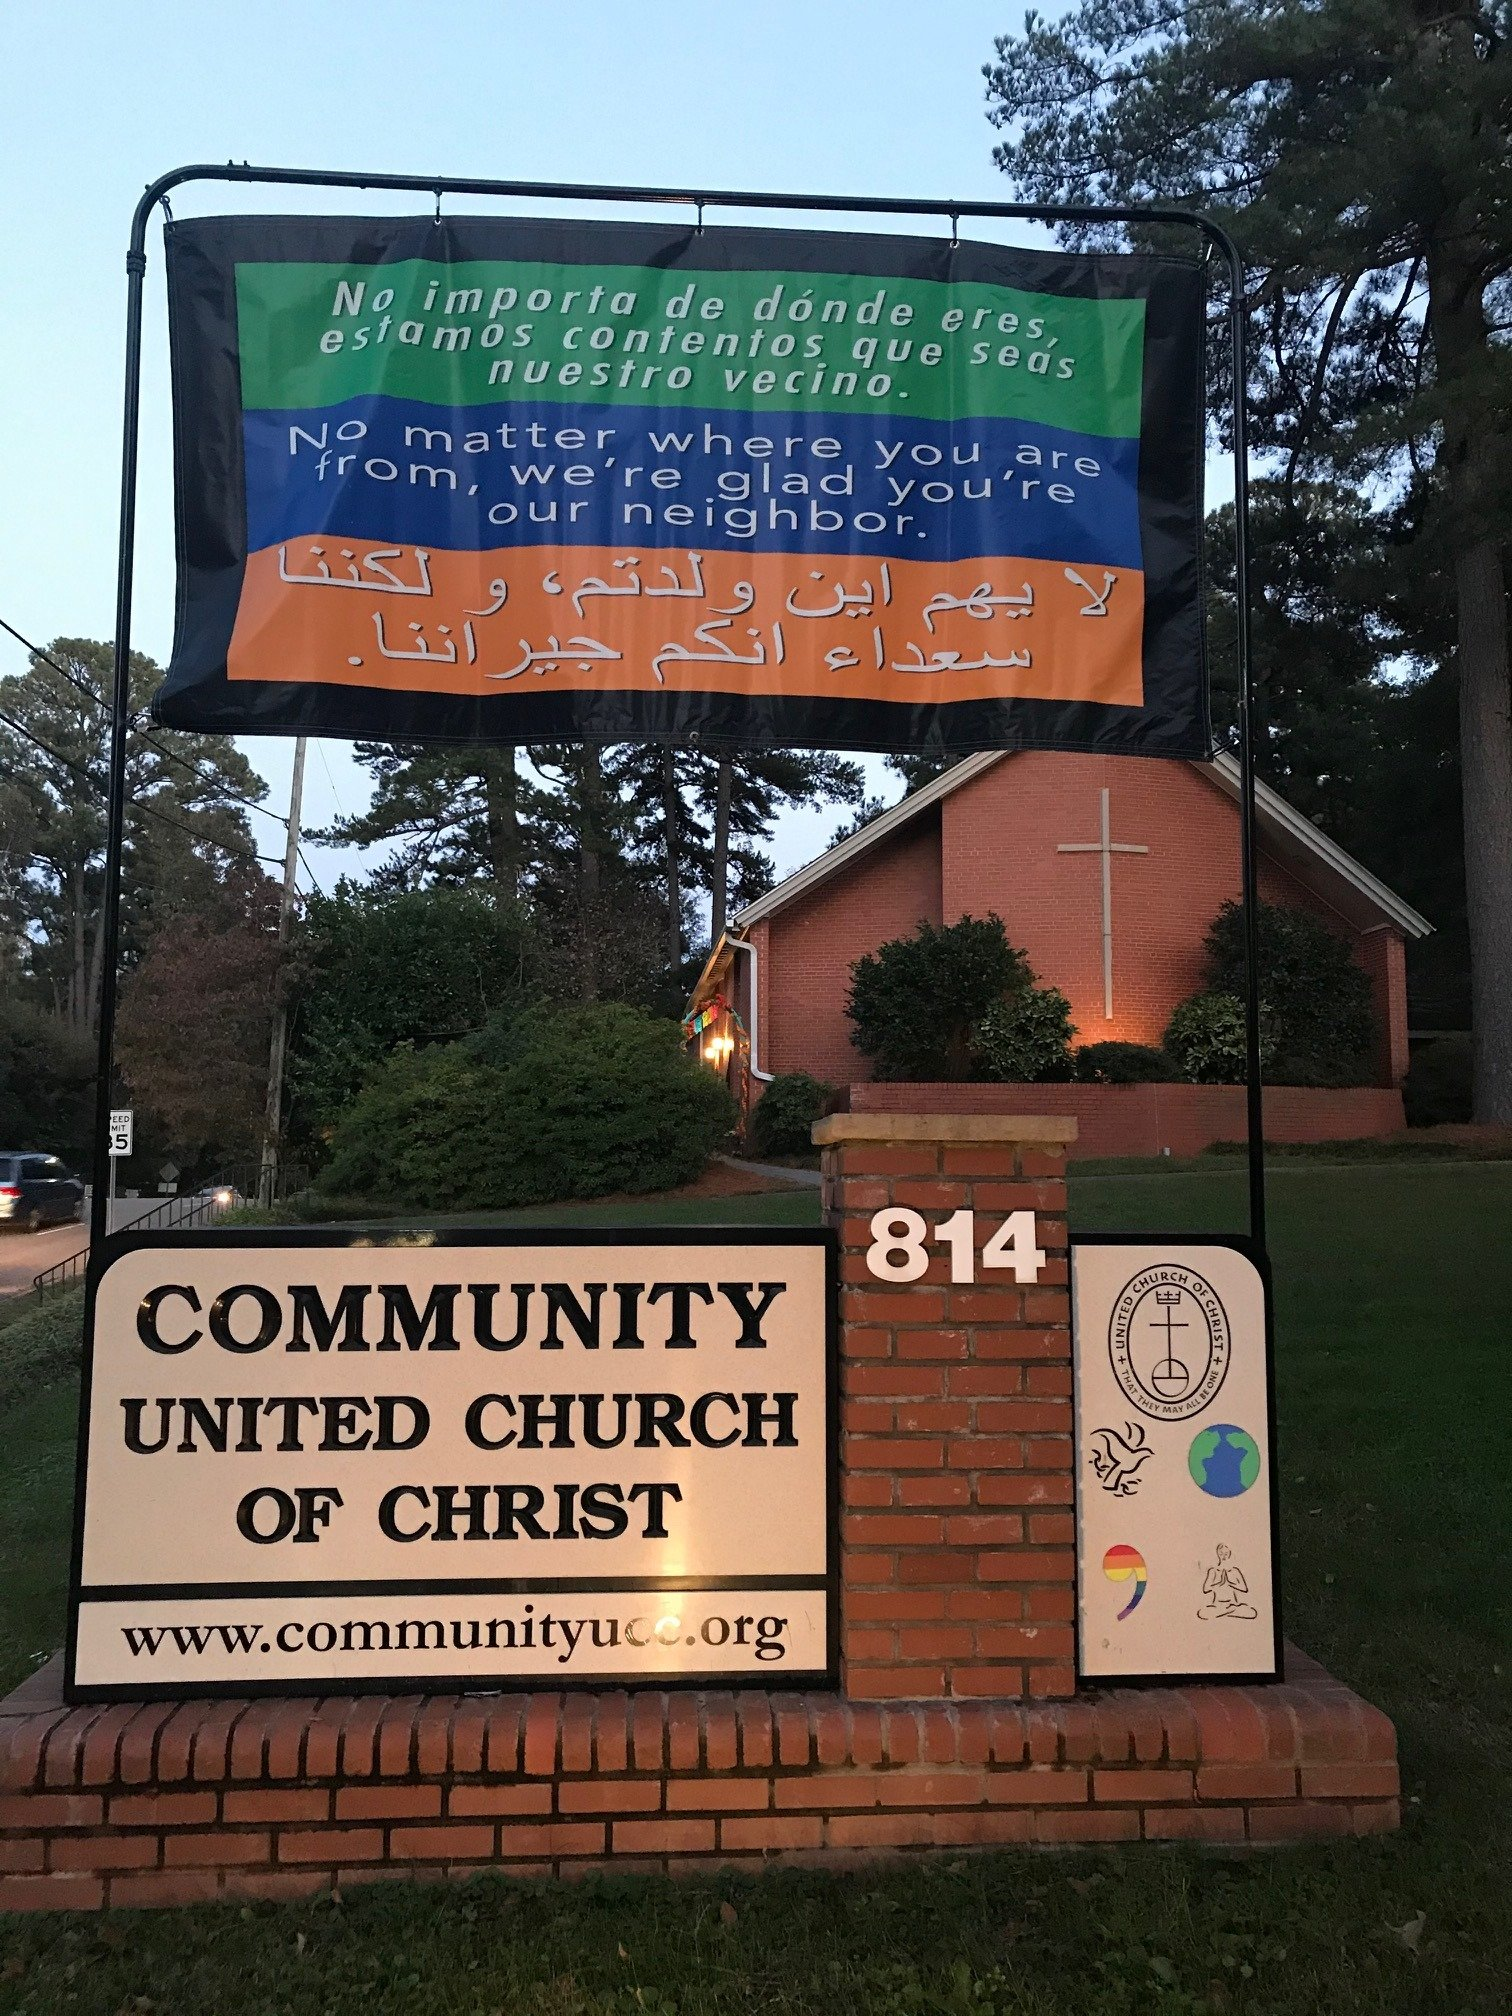 Community United Church of Christ Sign and Building